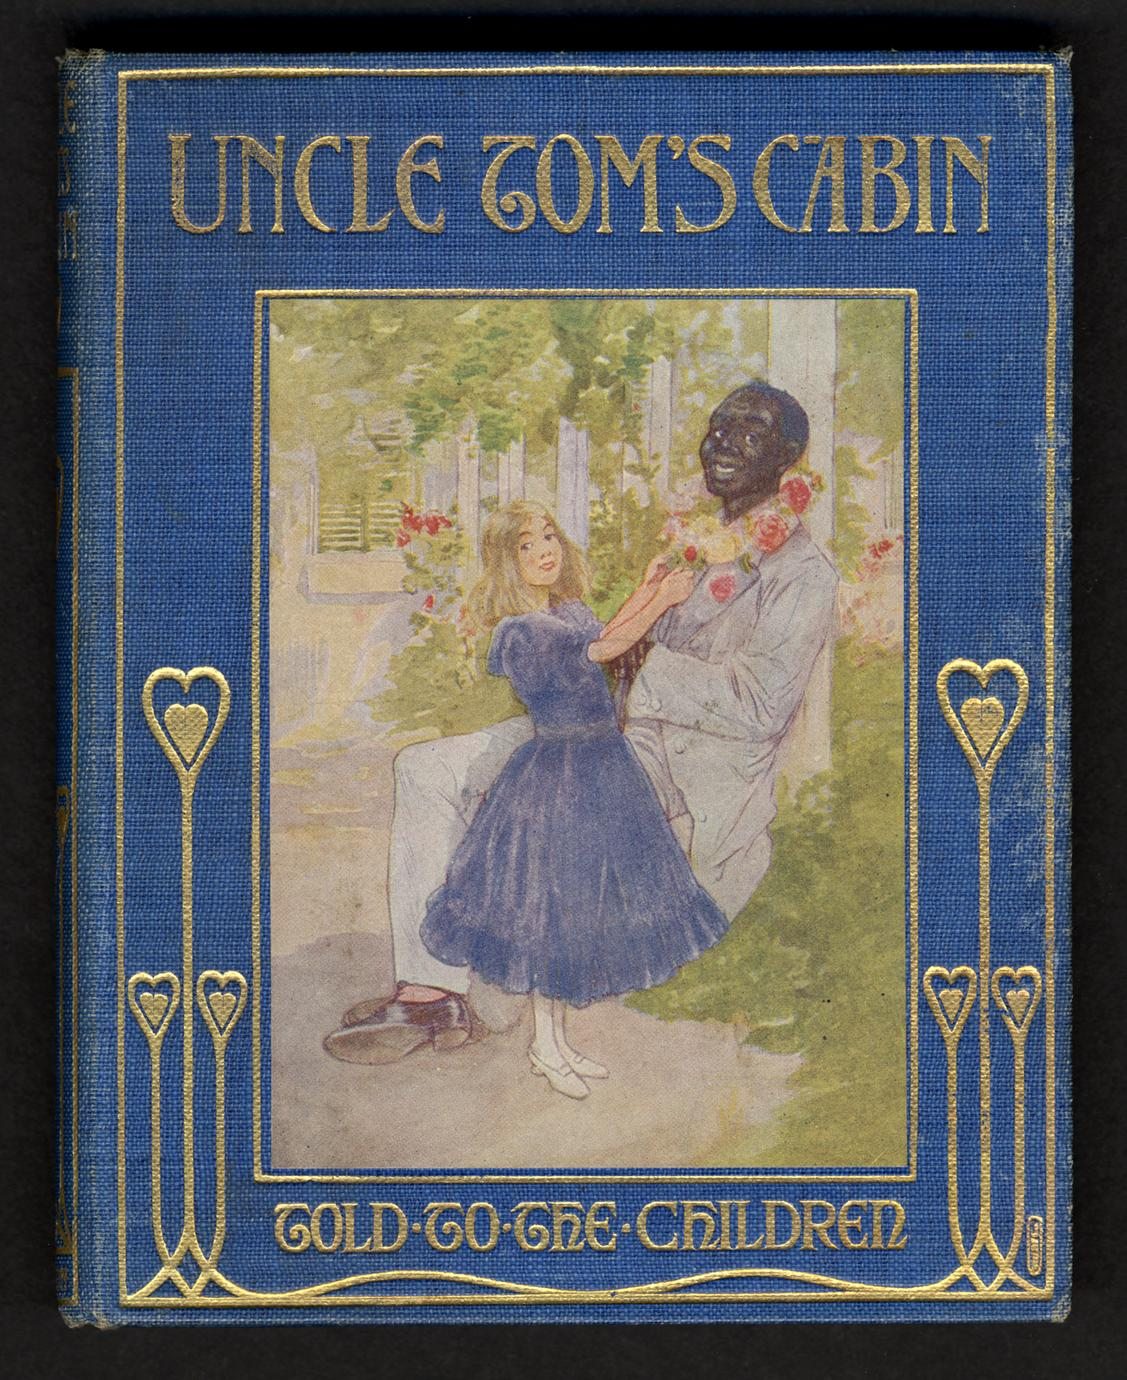 Uncle Tom's cabin : told to the children (1 of 3)